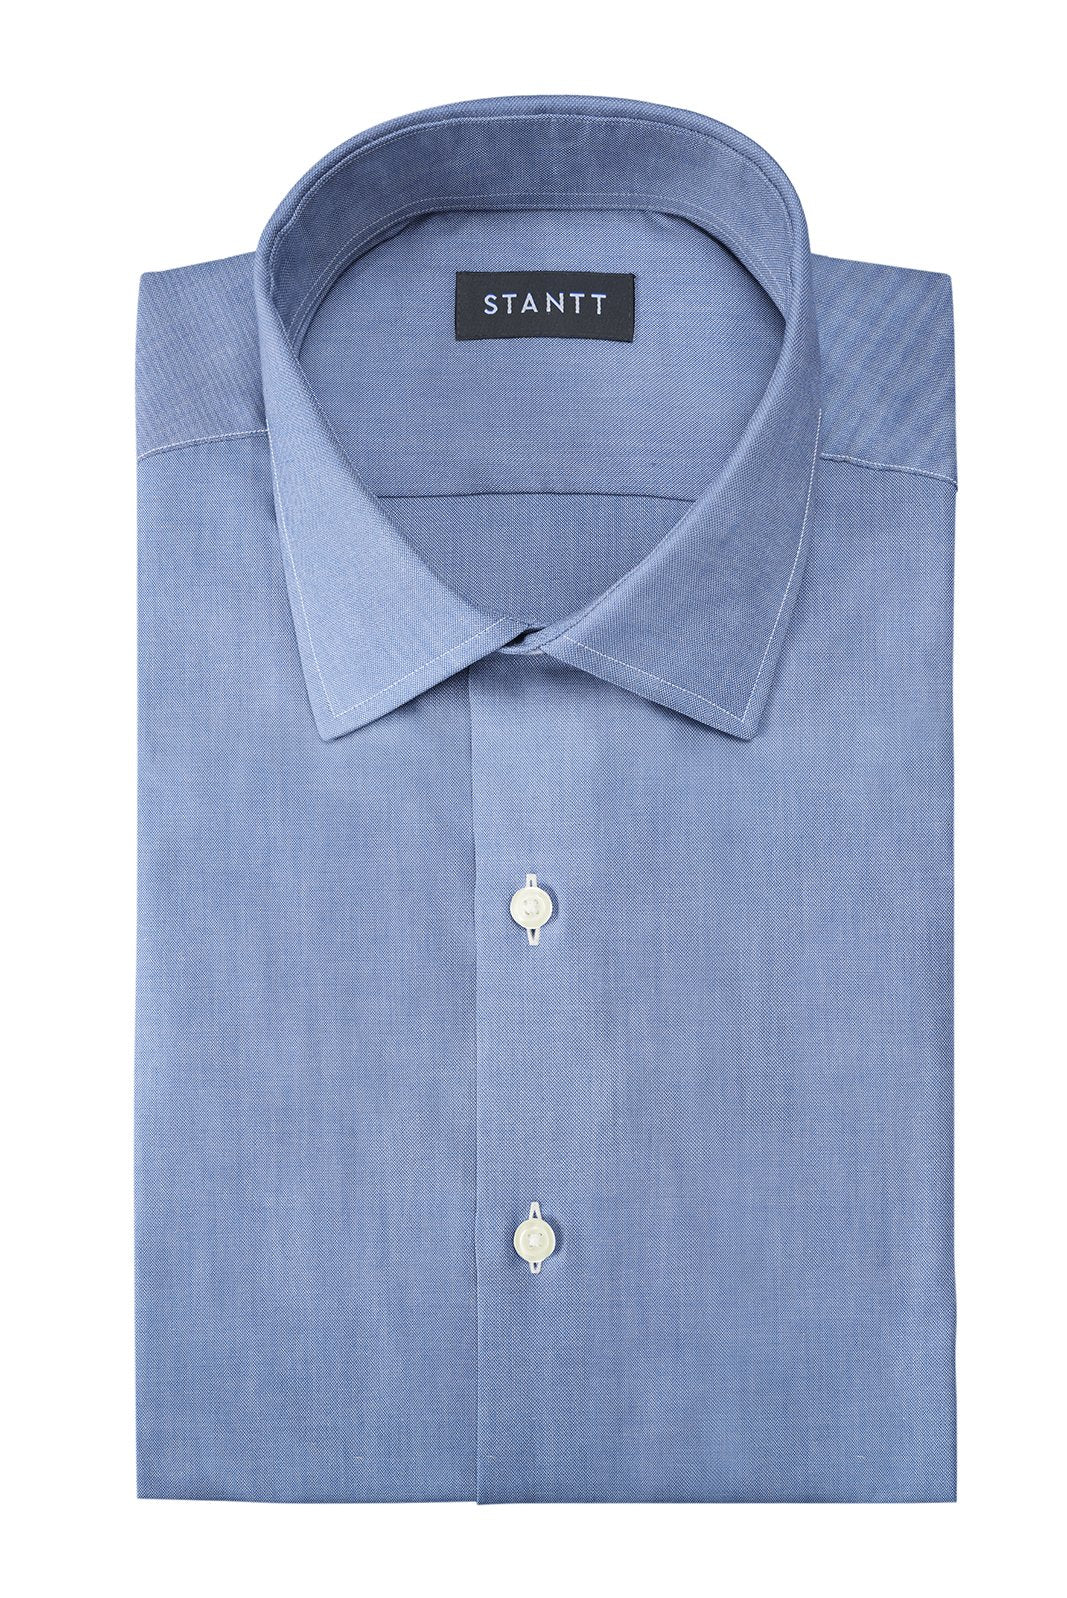 Indigo Oxford Chambray: Modified-Spread Collar, Barrel Cuff